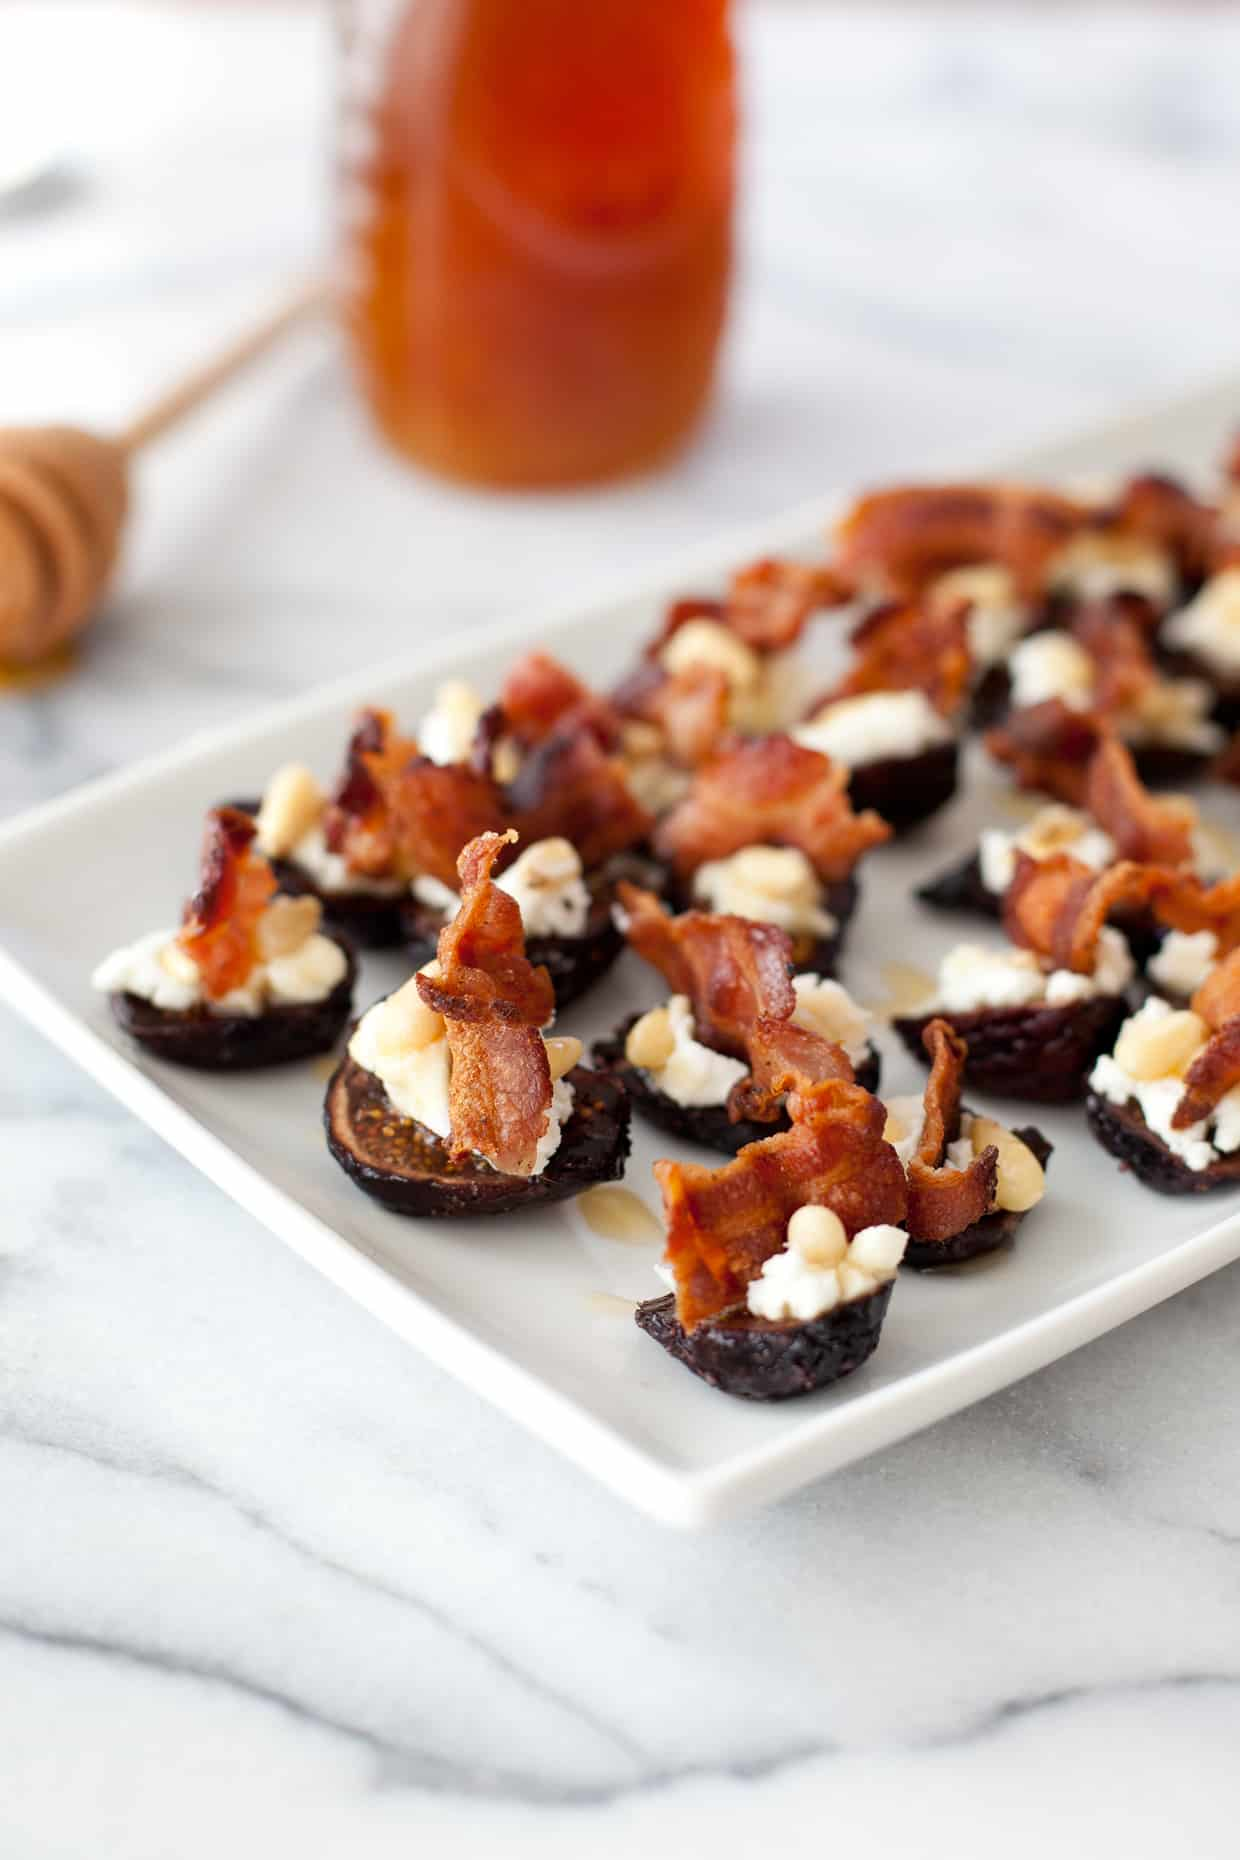 Pancetta Crisps With Goat Cheese And Figs Recipes — Dishmaps